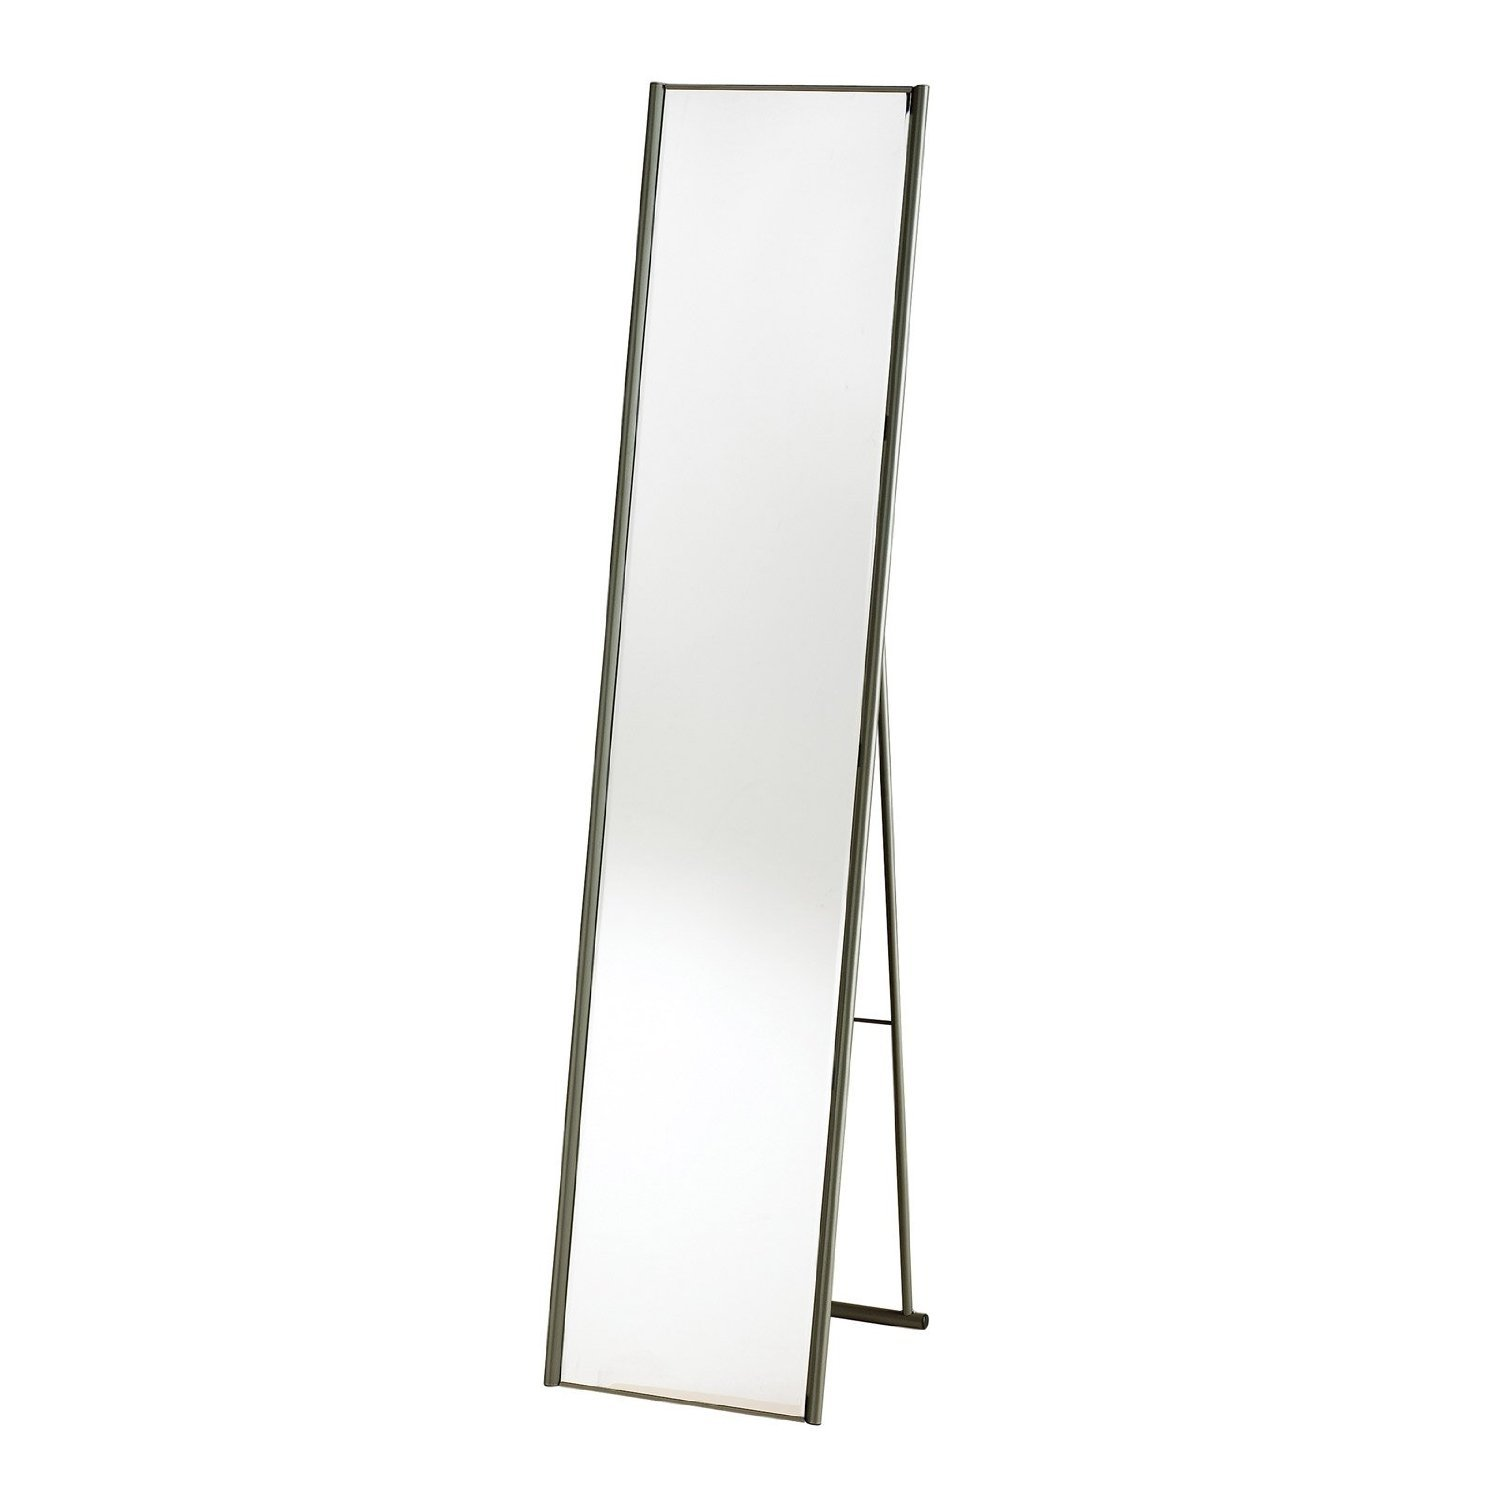 Adesso WK2444-22 Alice Floor Mirror – Powder Coated Champagne Full Length Mirror with Steel Finishing. Home Decor Accessories by Adesso